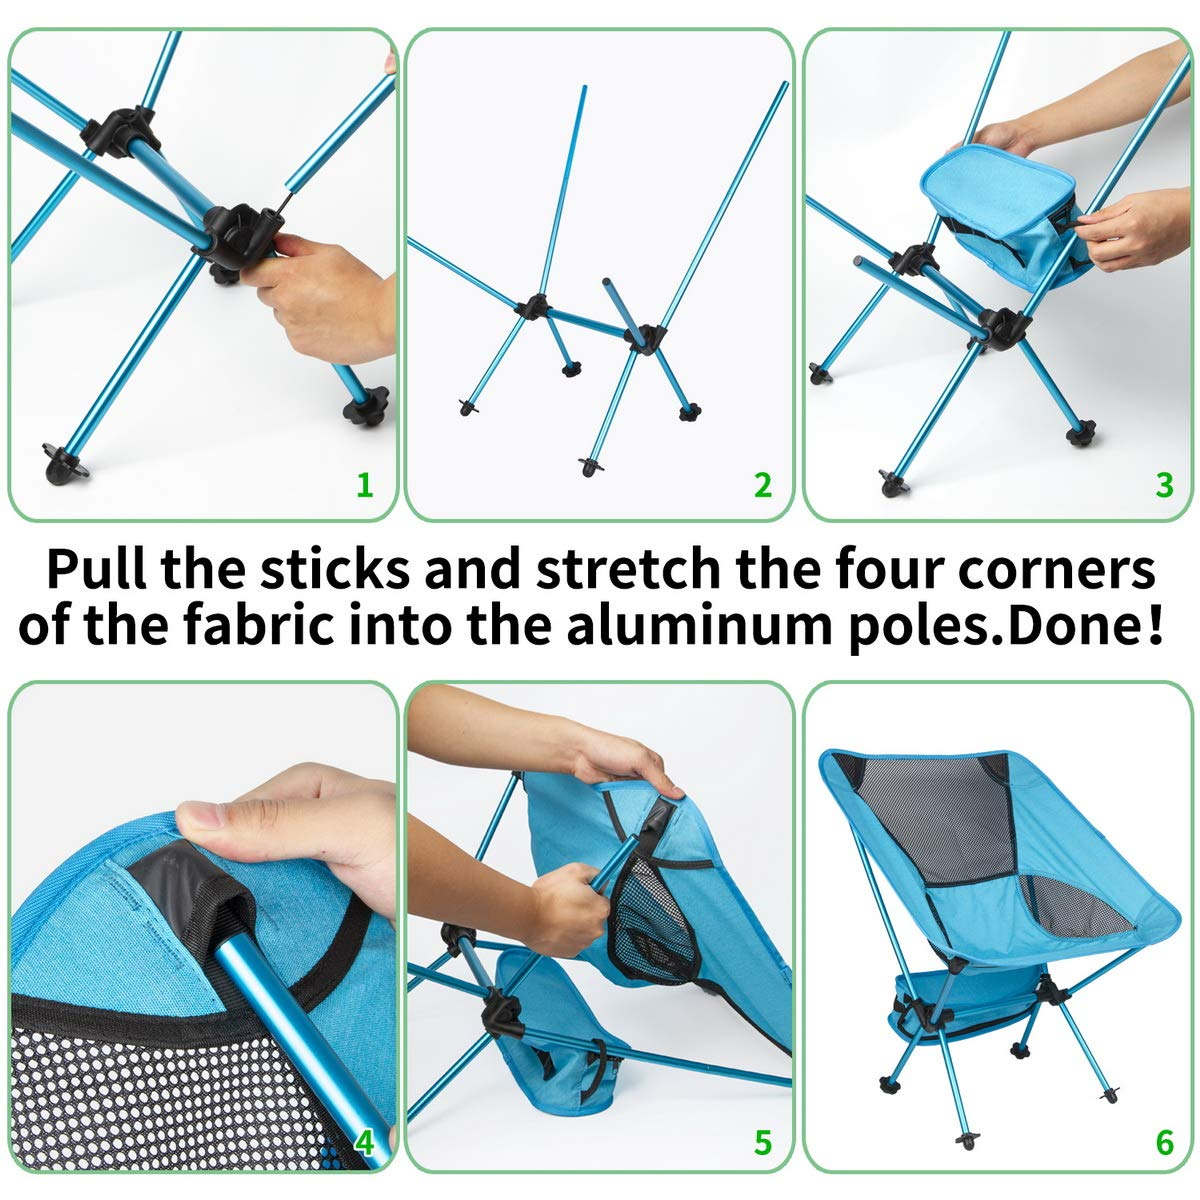 Beach Chair Portable and Lightweight Folding Backpacking Chairs with Carry Bag Outdoor Folding Chairs and Lightweight Folding Backpacking Chairs with Carry Bag Black OIKA Camping Chairs for Adults